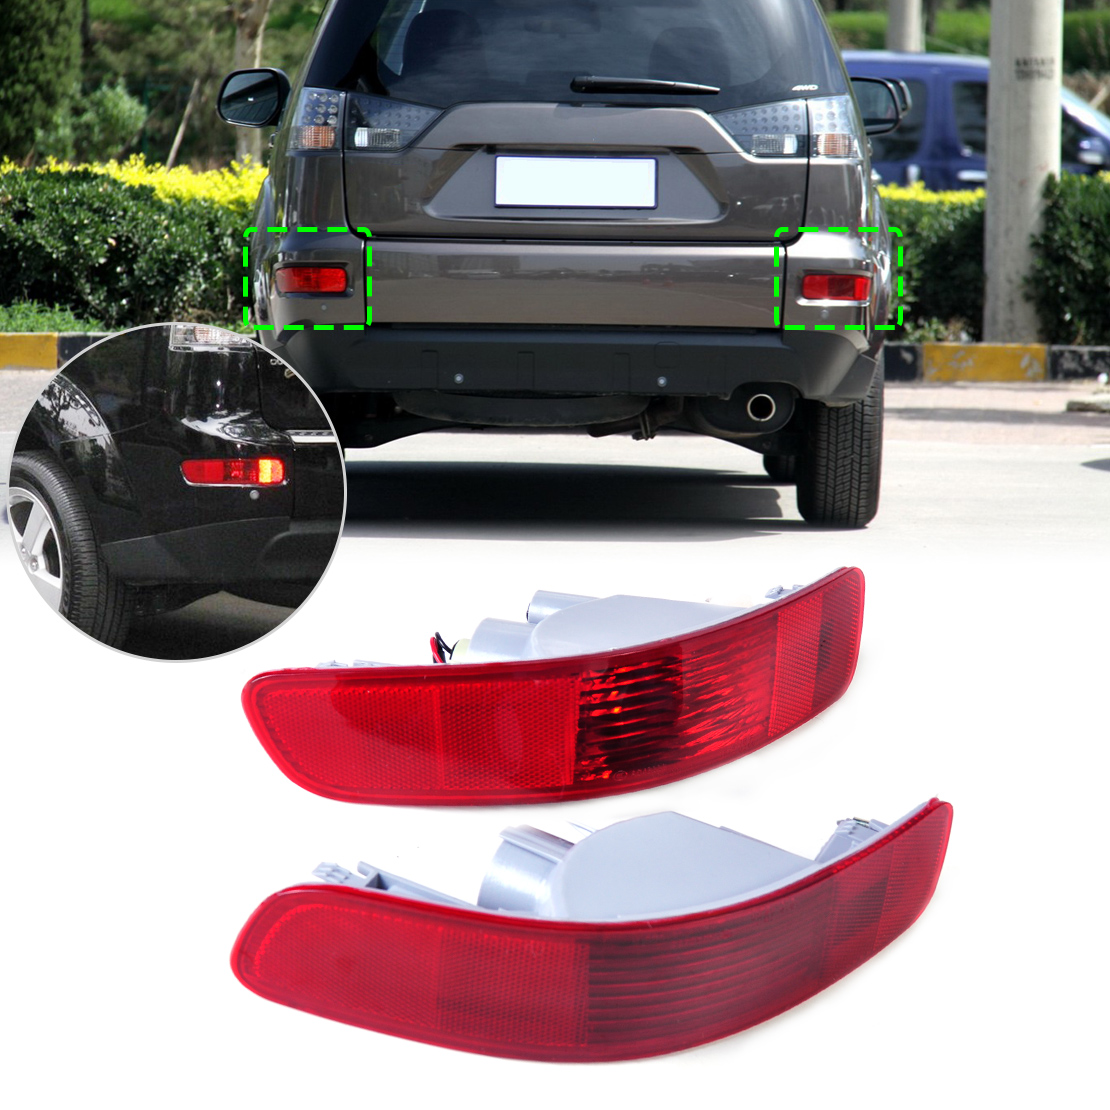 beler 2x Rear Right Left Tail Fog Light Lamp Reflector 8352A005 8337A015 for Mitsubishi Outlander 2007 2008 2009 2010 2011 2012 free shipping for skoda octavia sedan a5 2005 2006 2007 2008 right side rear lamp tail light